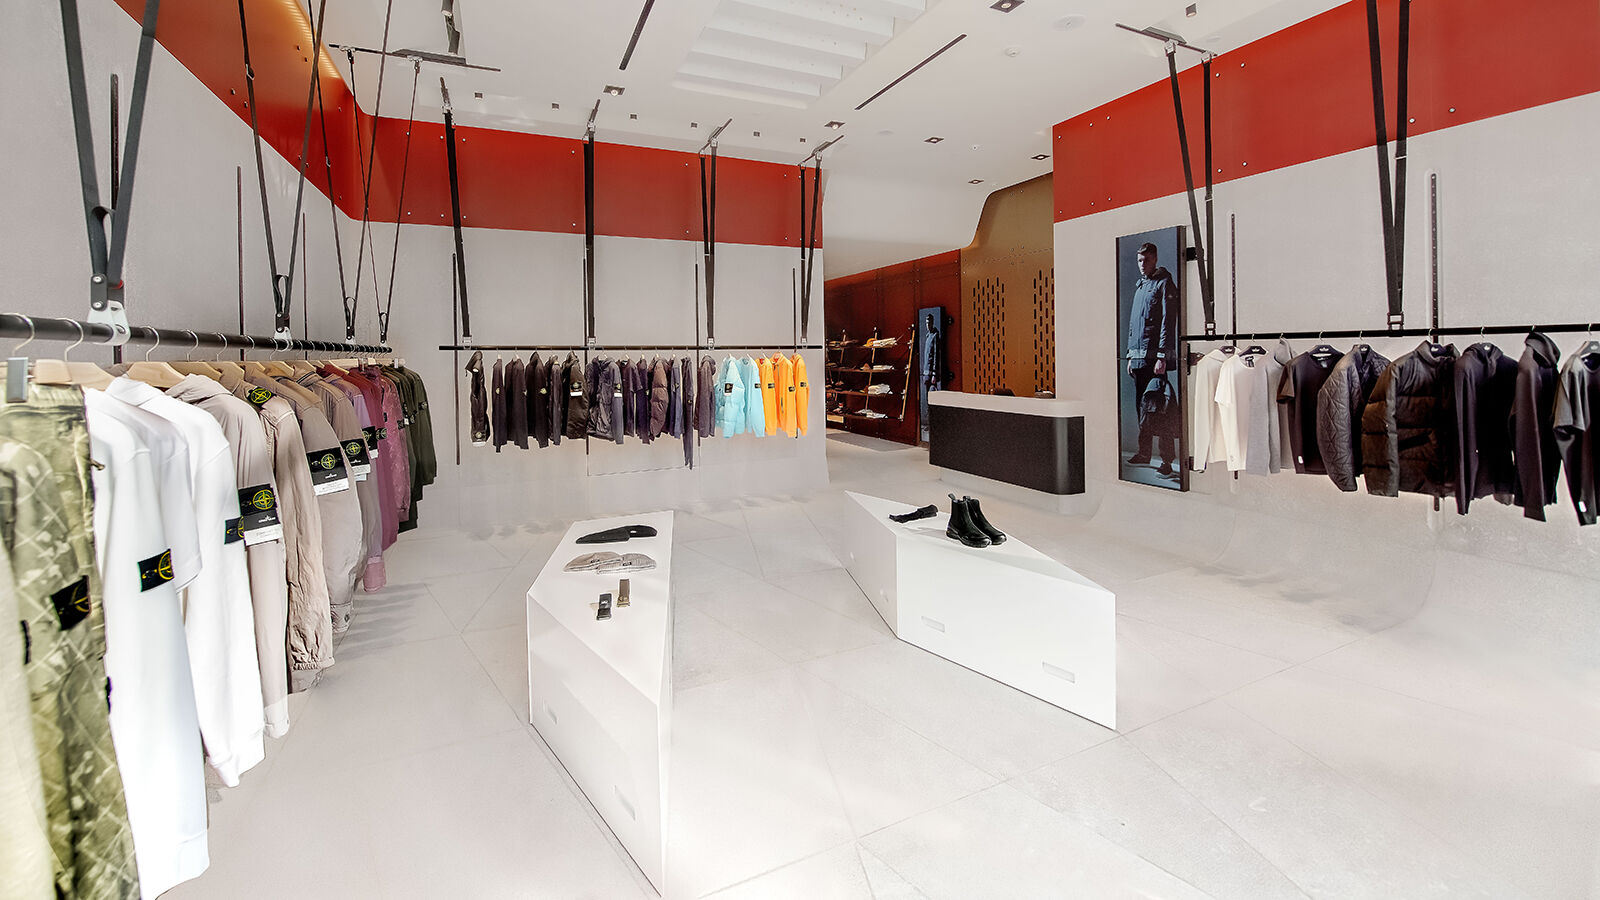 Interior view of a store with red accents, garments arranged by color hanging on racks along the side walls and two white display tables with shoes and accessories in the center.